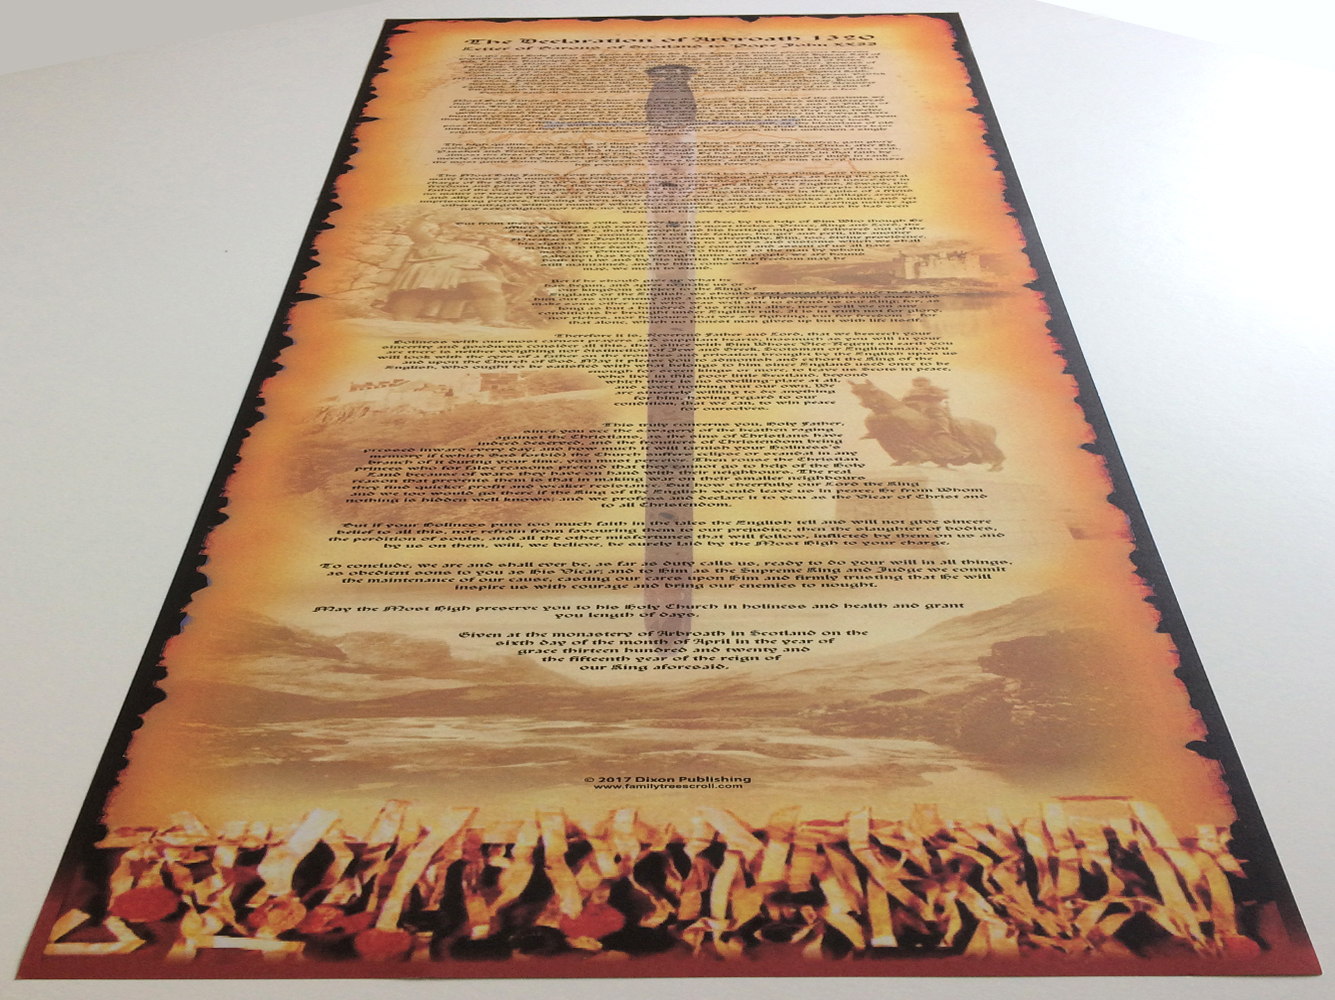 The Declaration of Arbroath Souvenir Scroll from Scotland - The perfect Scottish keepsake historical gift